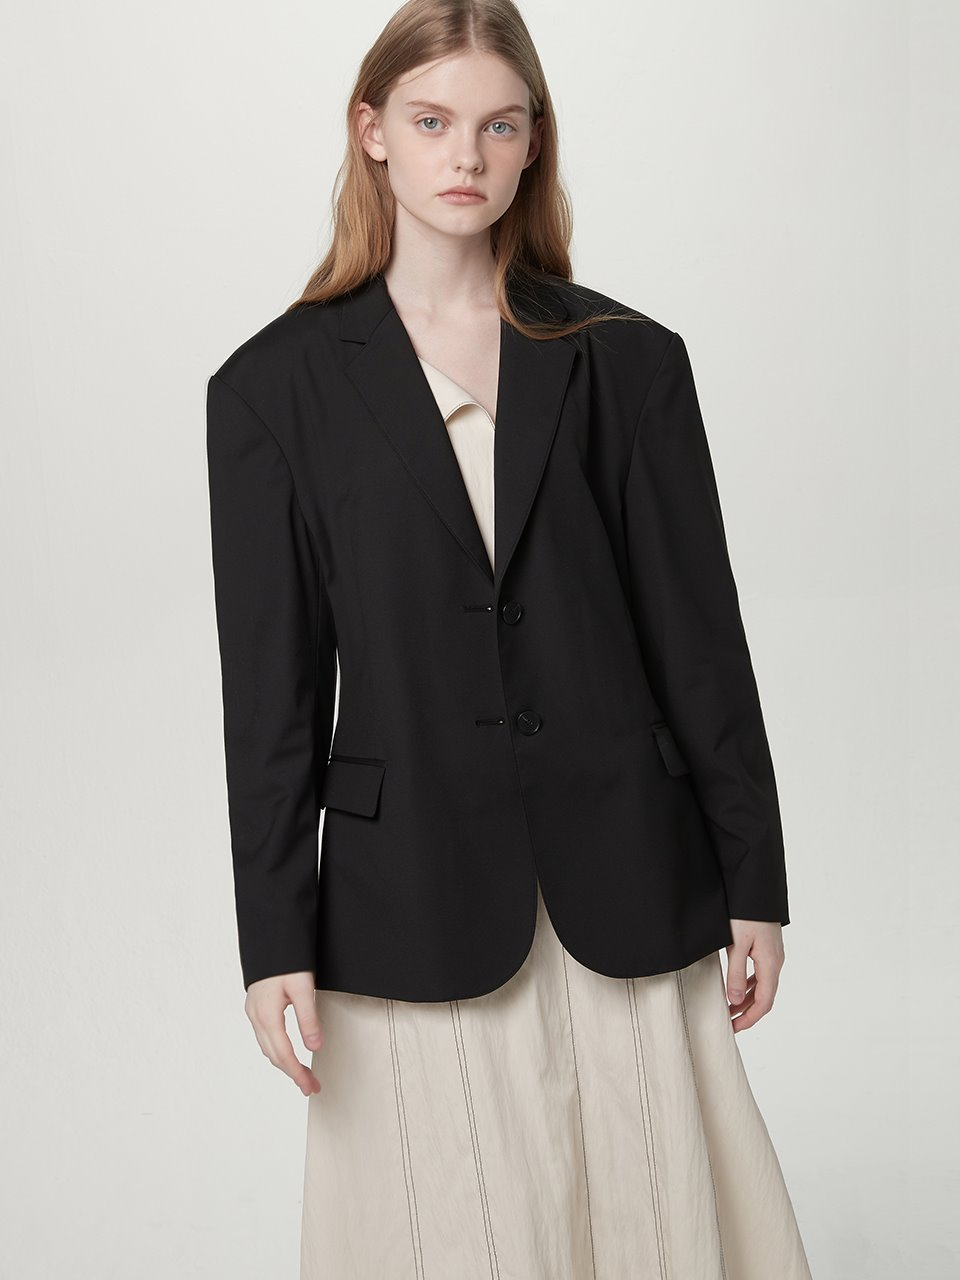 Single suit jacket - Black